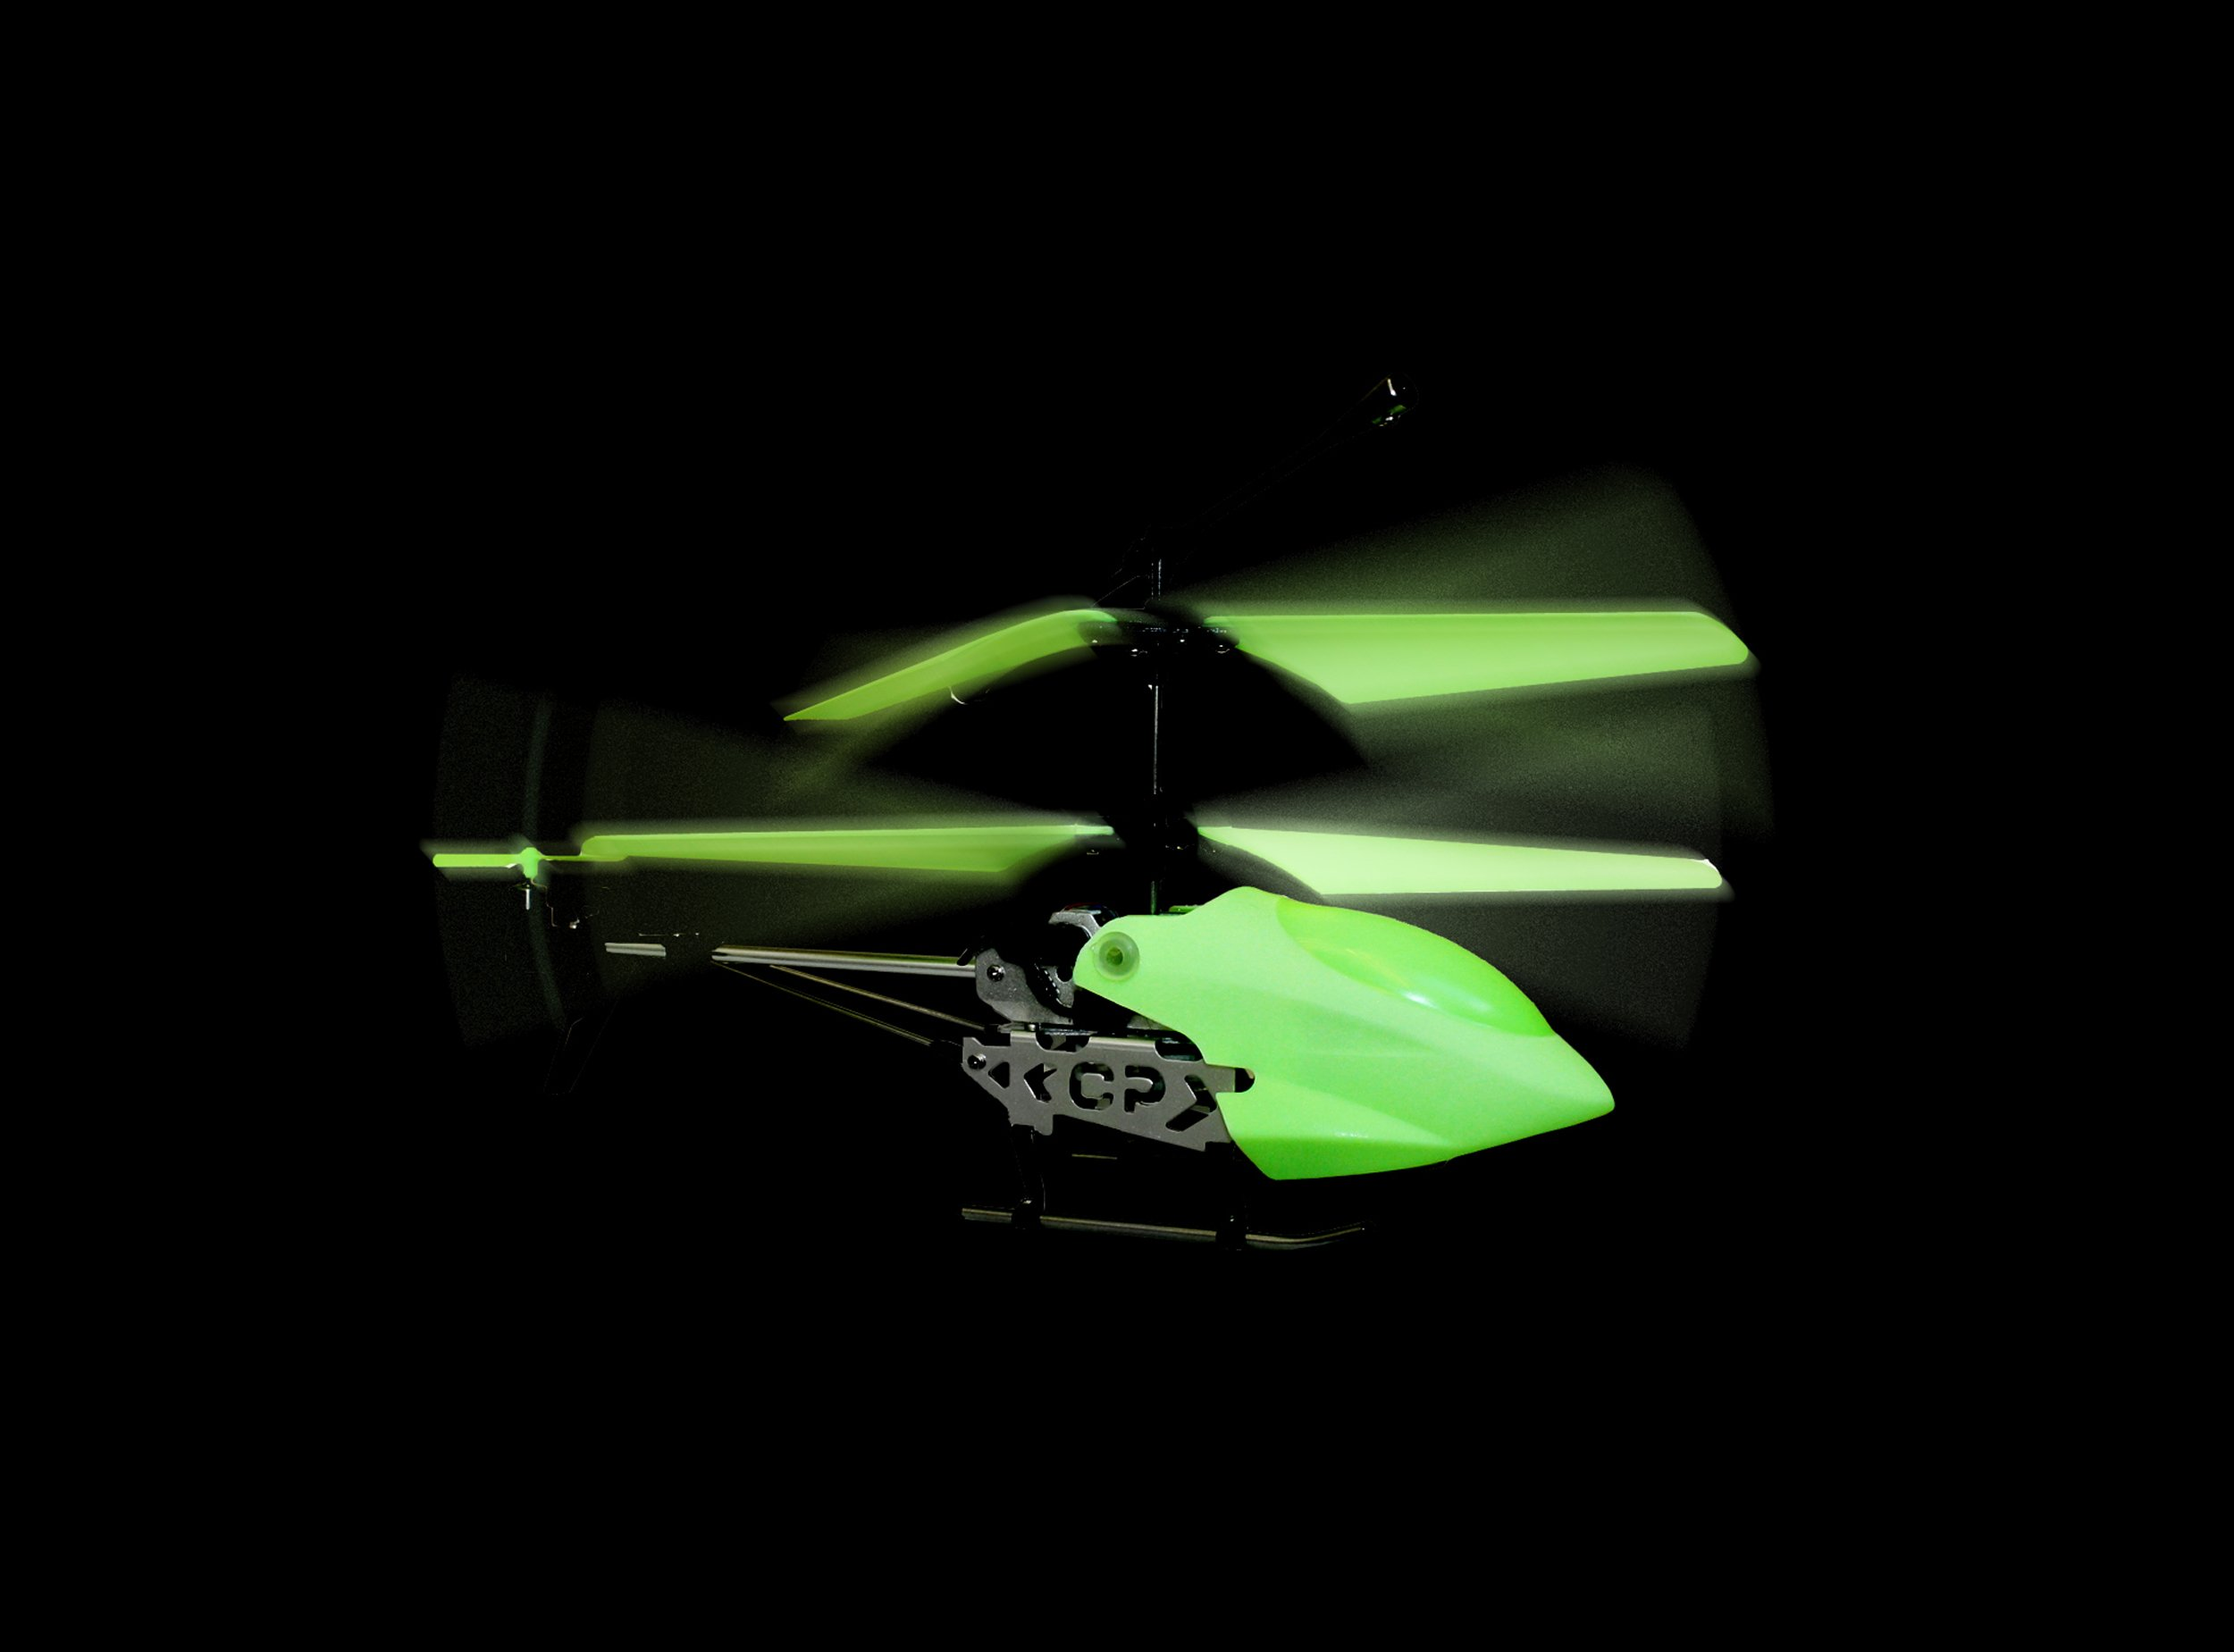 THUMBS UP Thumbsup UK, Glow in The Dark RC Helicopter by THUMBS UP (Image #2)